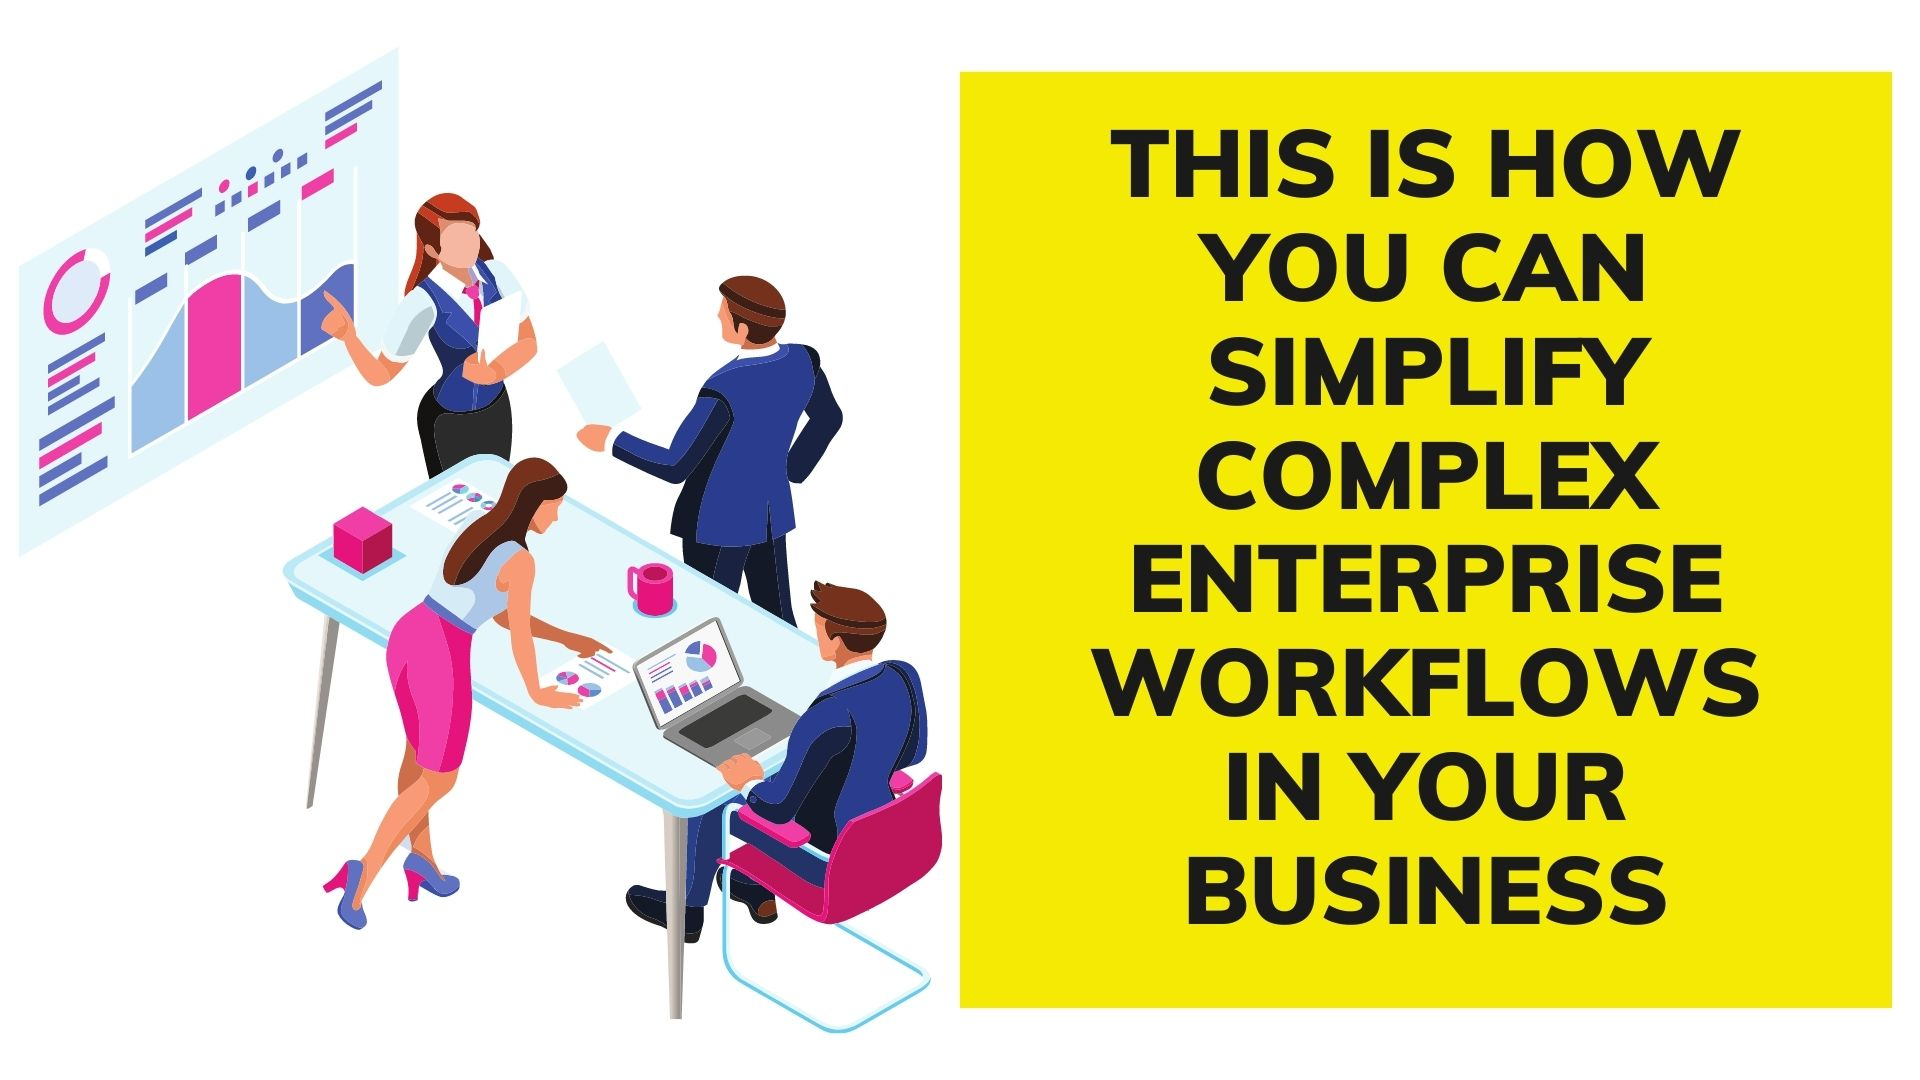 This is How you can Simplify Complex Enterprise Workflows in Your Business